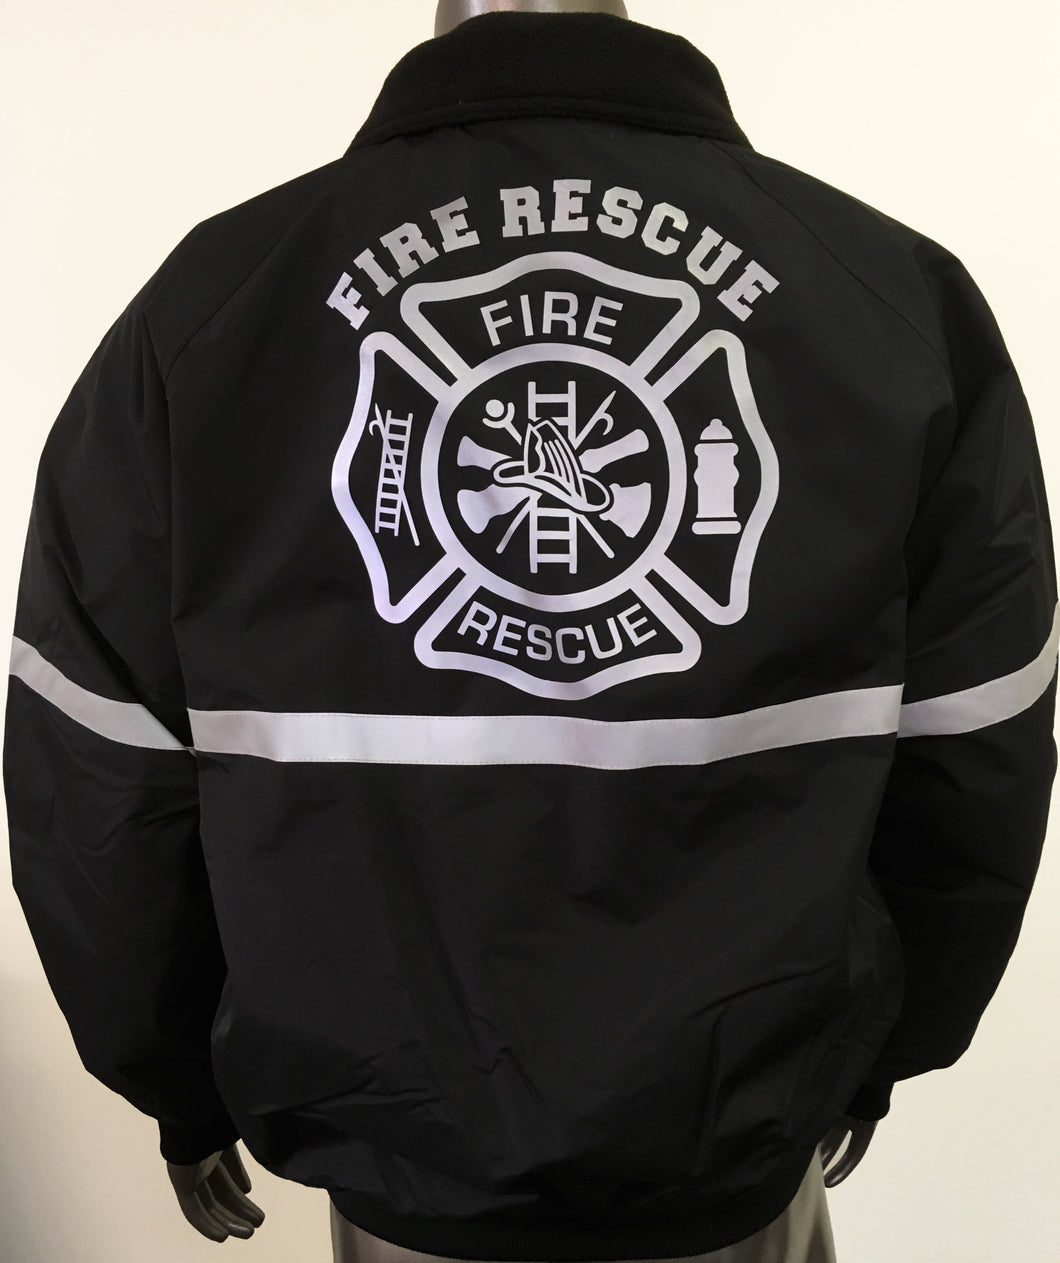 NEW custom printed jacket with 3M reflective FIRE RESCUE front and MALTESE CROSS on the back